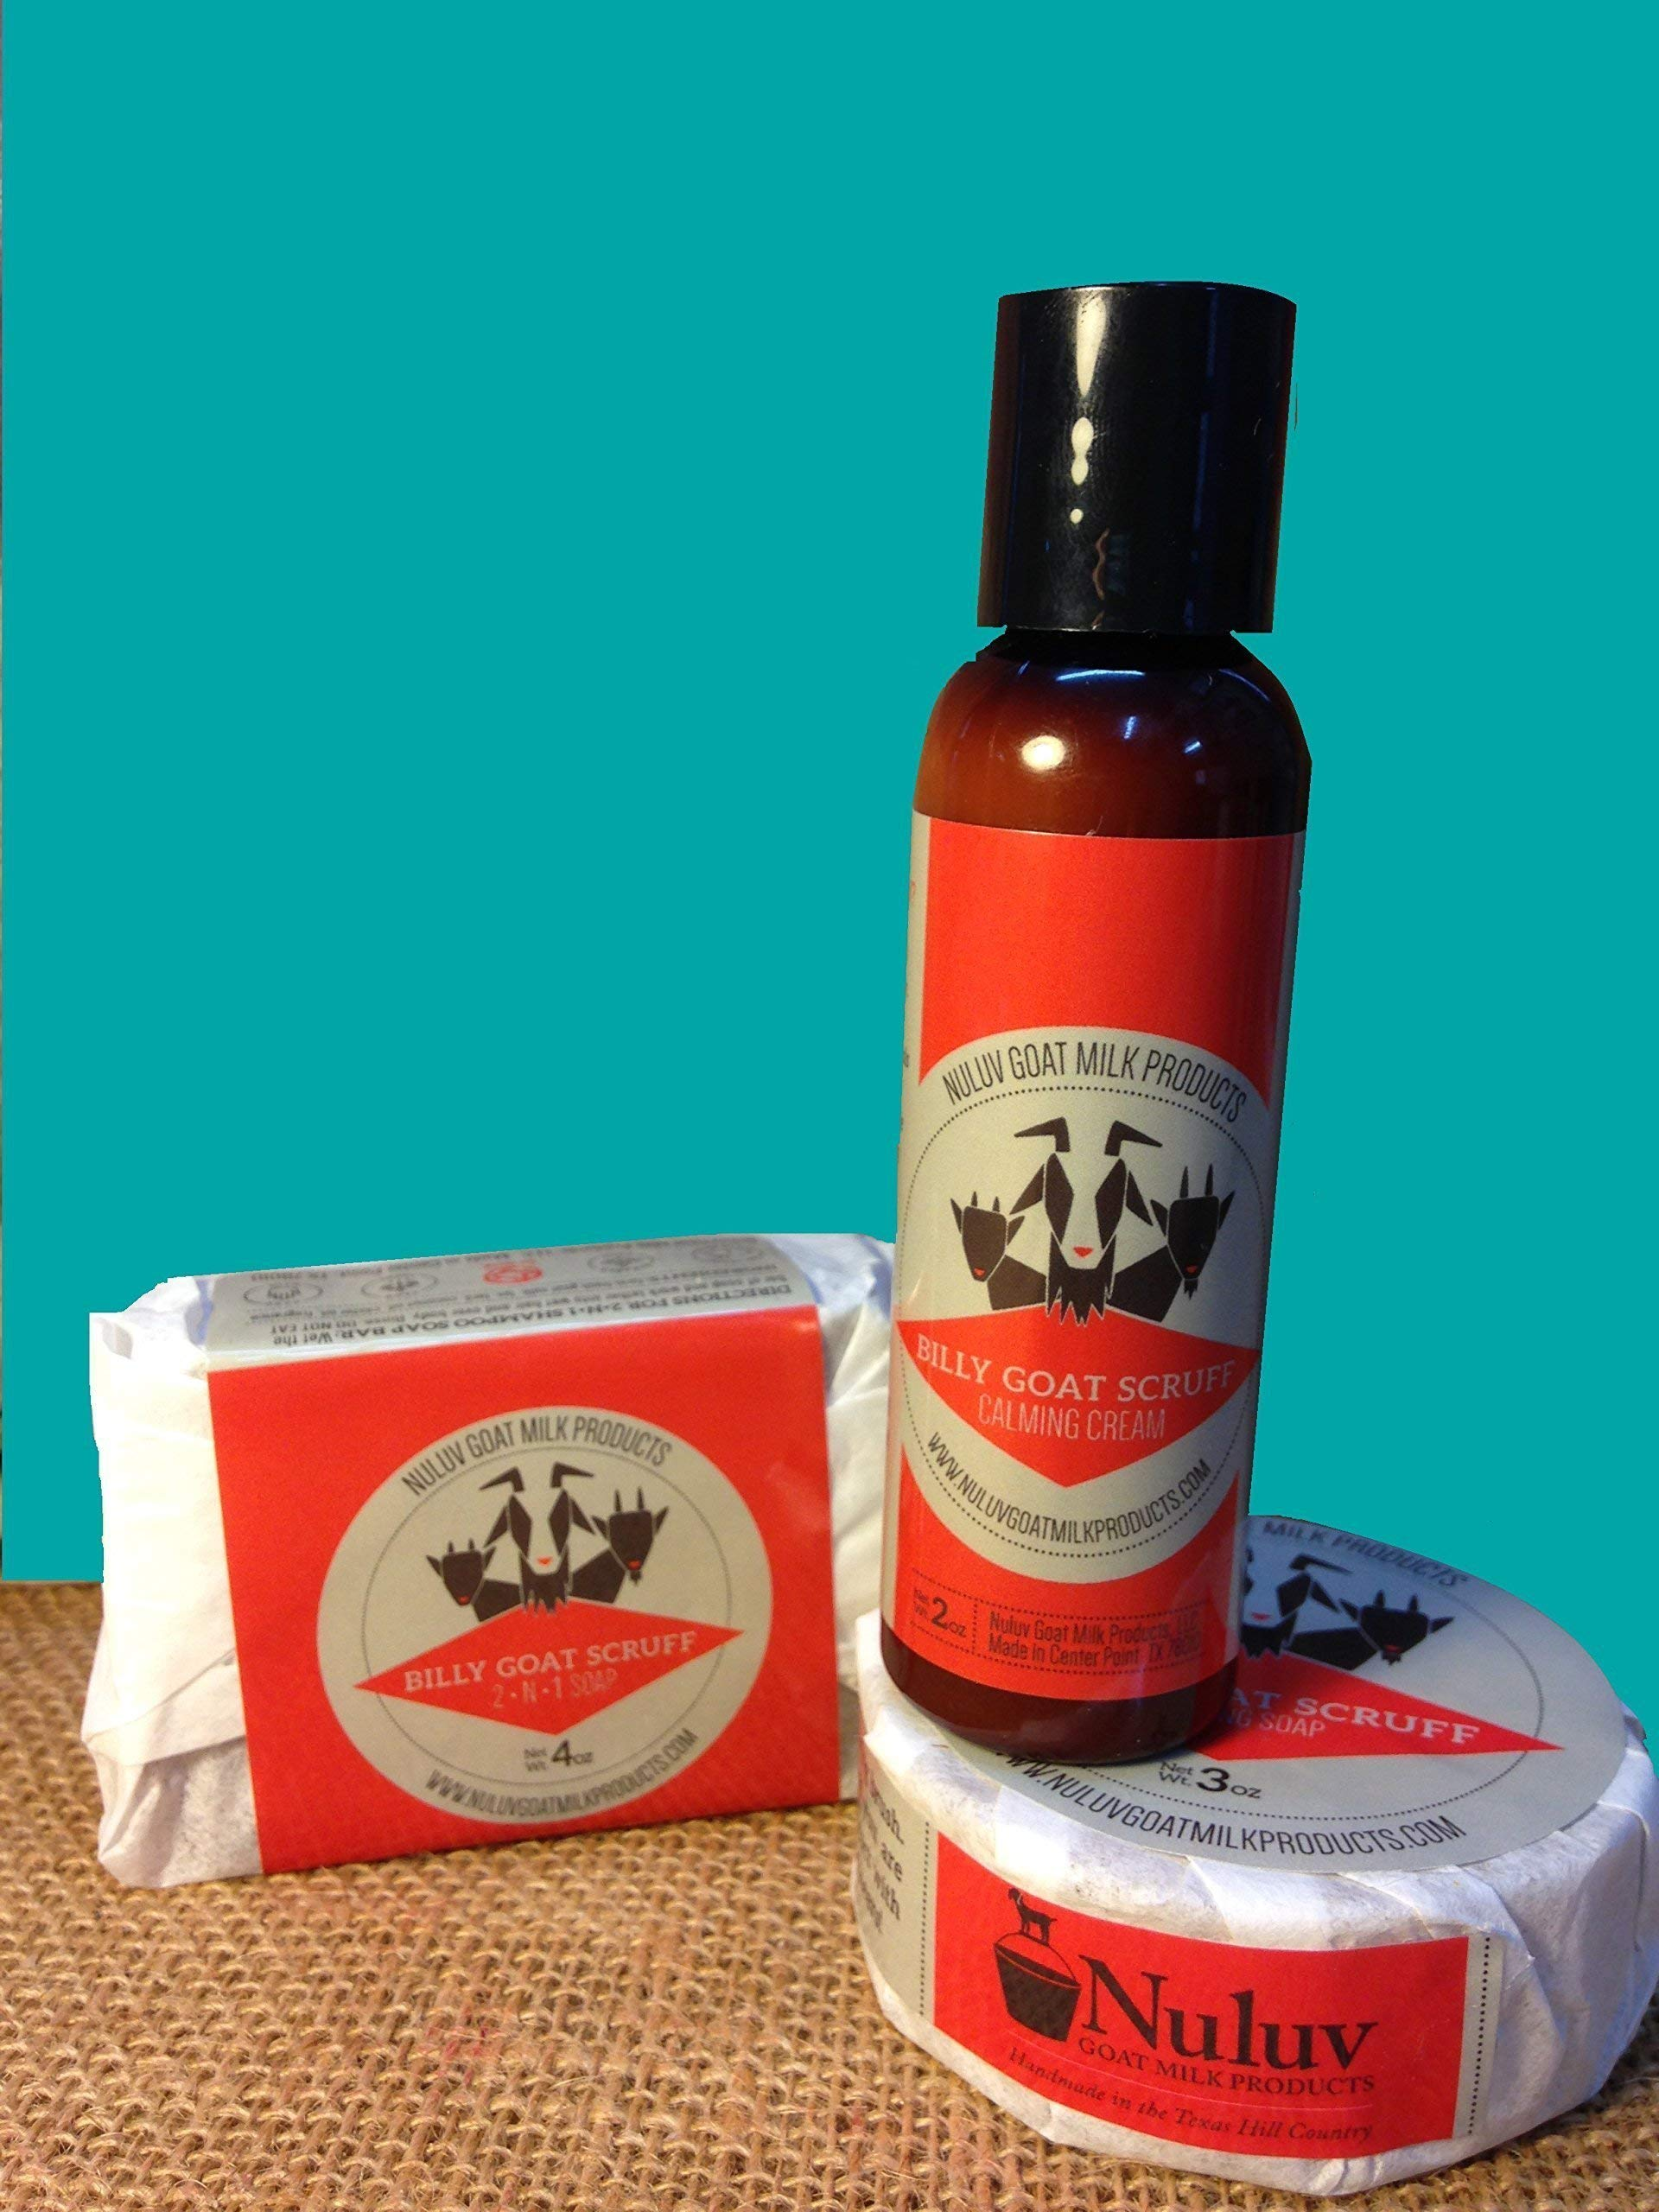 Billy Goat Scruff Goat Milk Shave Set Shave Soap, Aftershave Lotion, 2-N-1 Shampoo and Body Bar